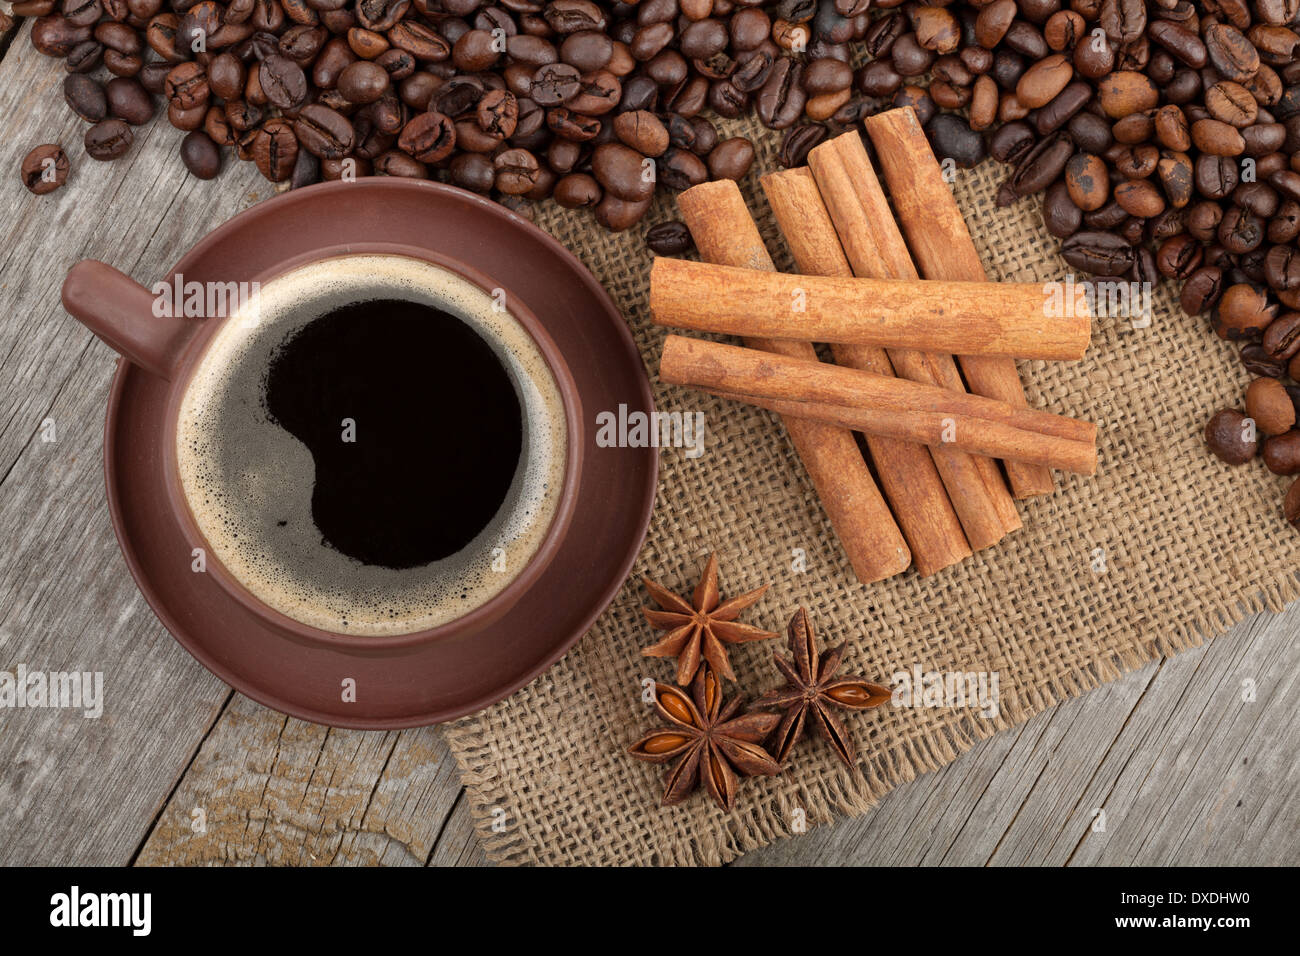 Coffee cup and spices on wooden table texture - Stock Image